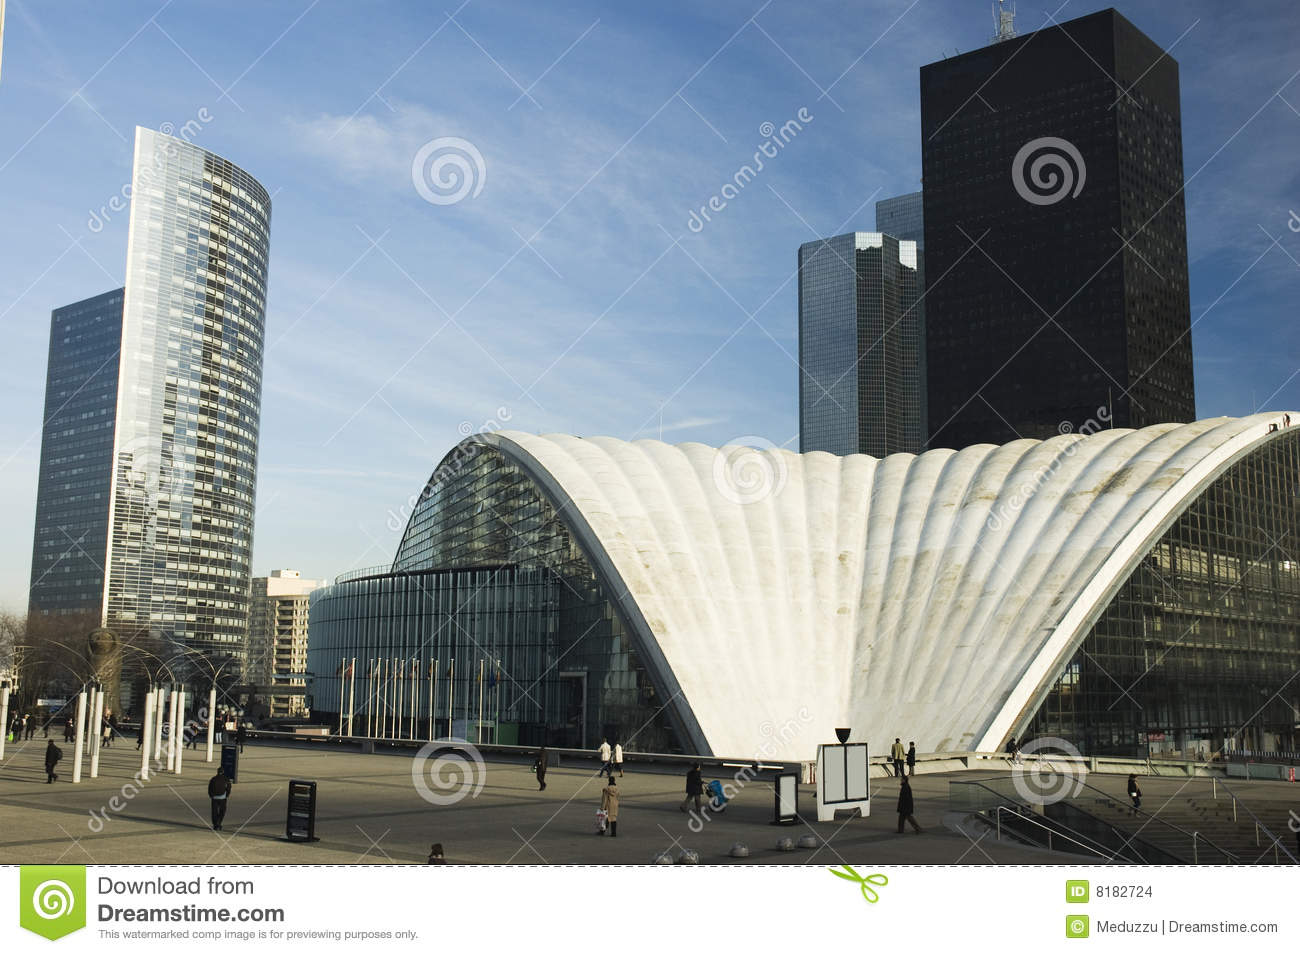 Modern Architecture In Paris Stock Images - Image: 8182724 - photo#42